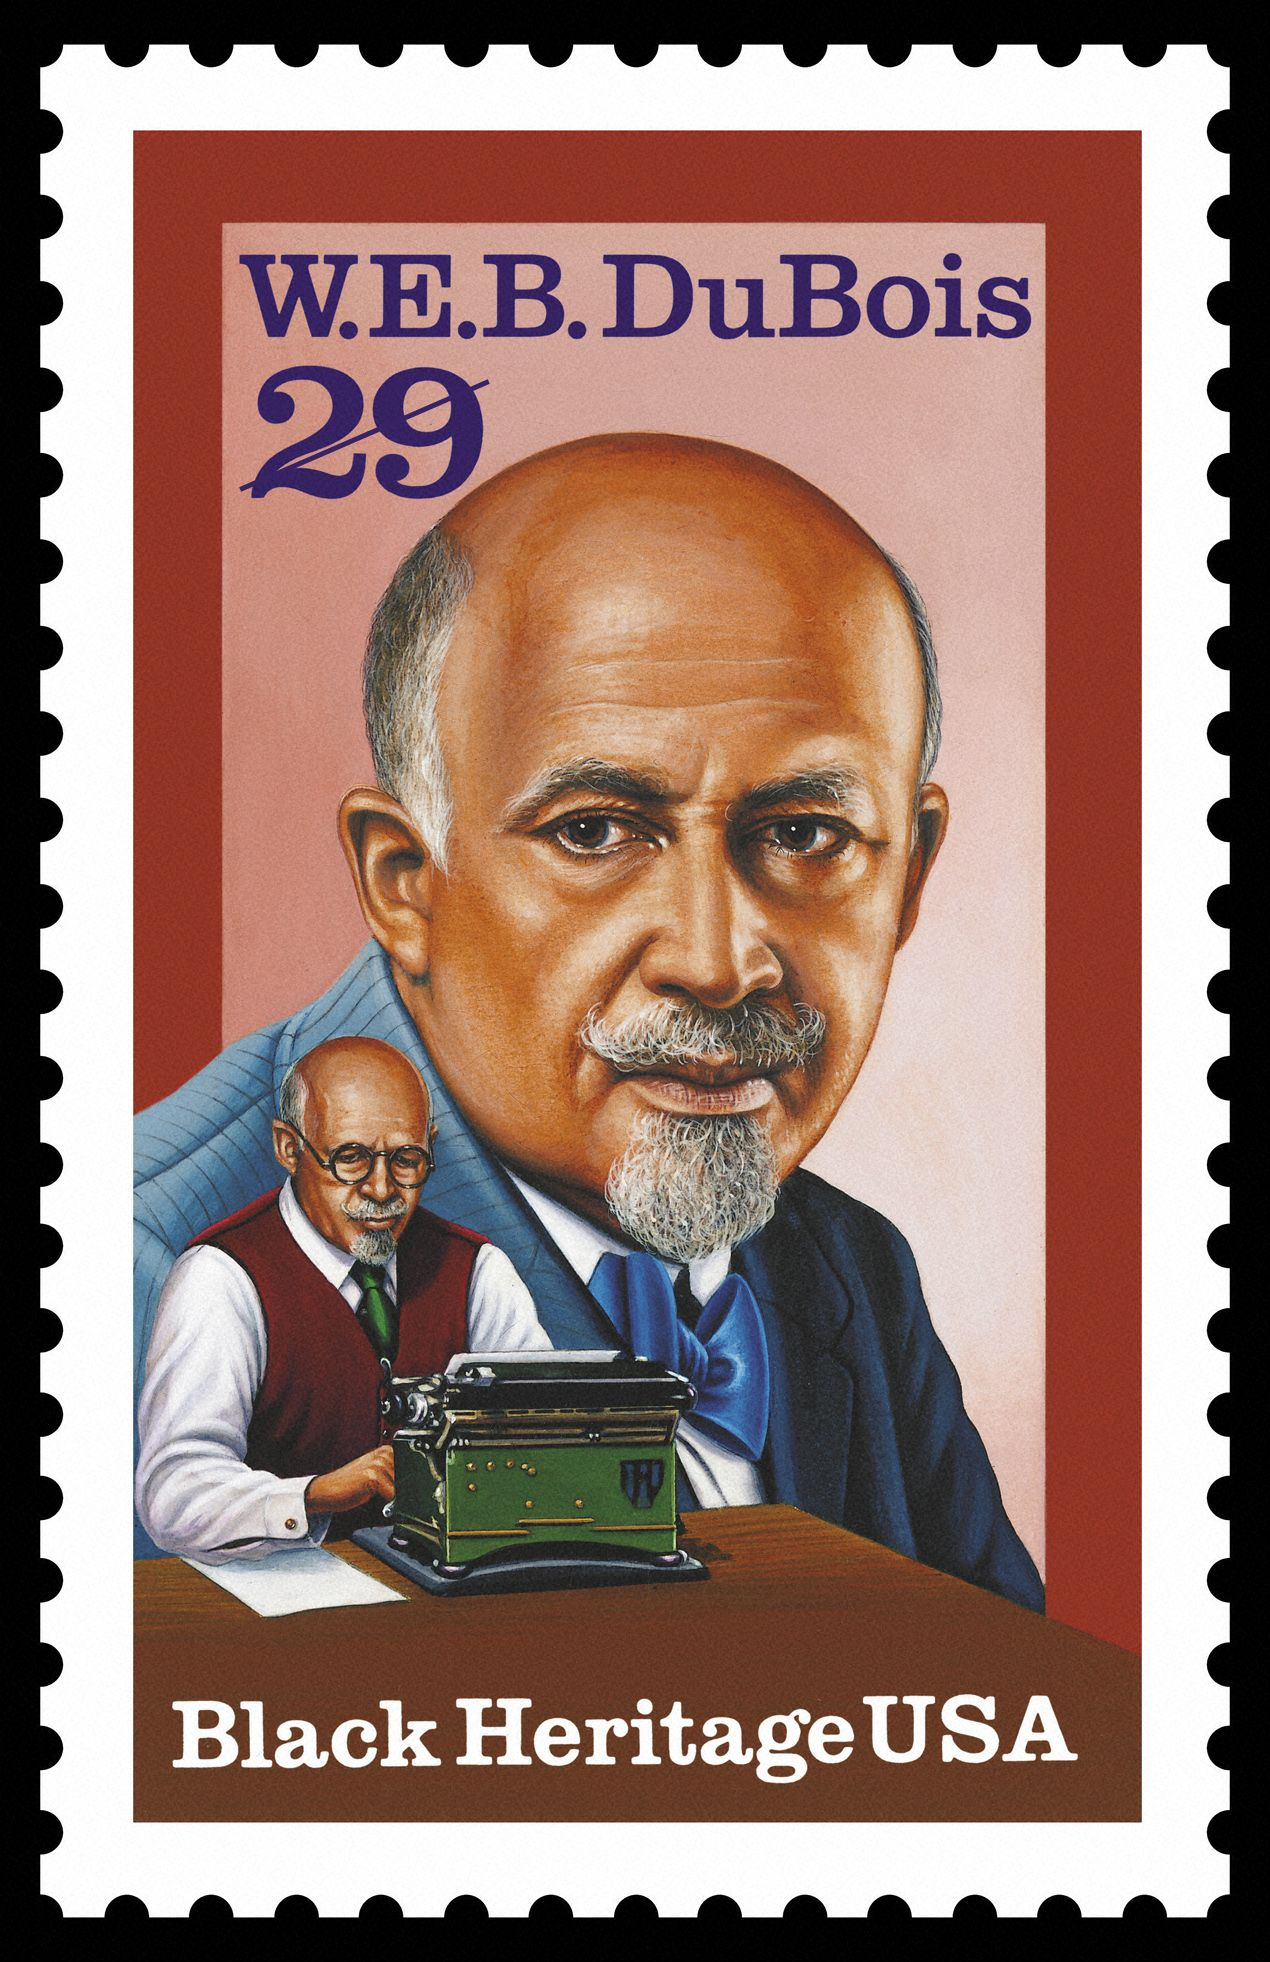 Profile Essays Examples An Activist Sociologist Writer And Brilliant Scholar Web Dubois  Penned  Books In His Lifetime And Over  Significant Essays He Was  Also The First  Just Walk On By Essay also Art History Essay An Activist Sociologist Writer And Brilliant Scholar Web  Ulysses S Grant Essay